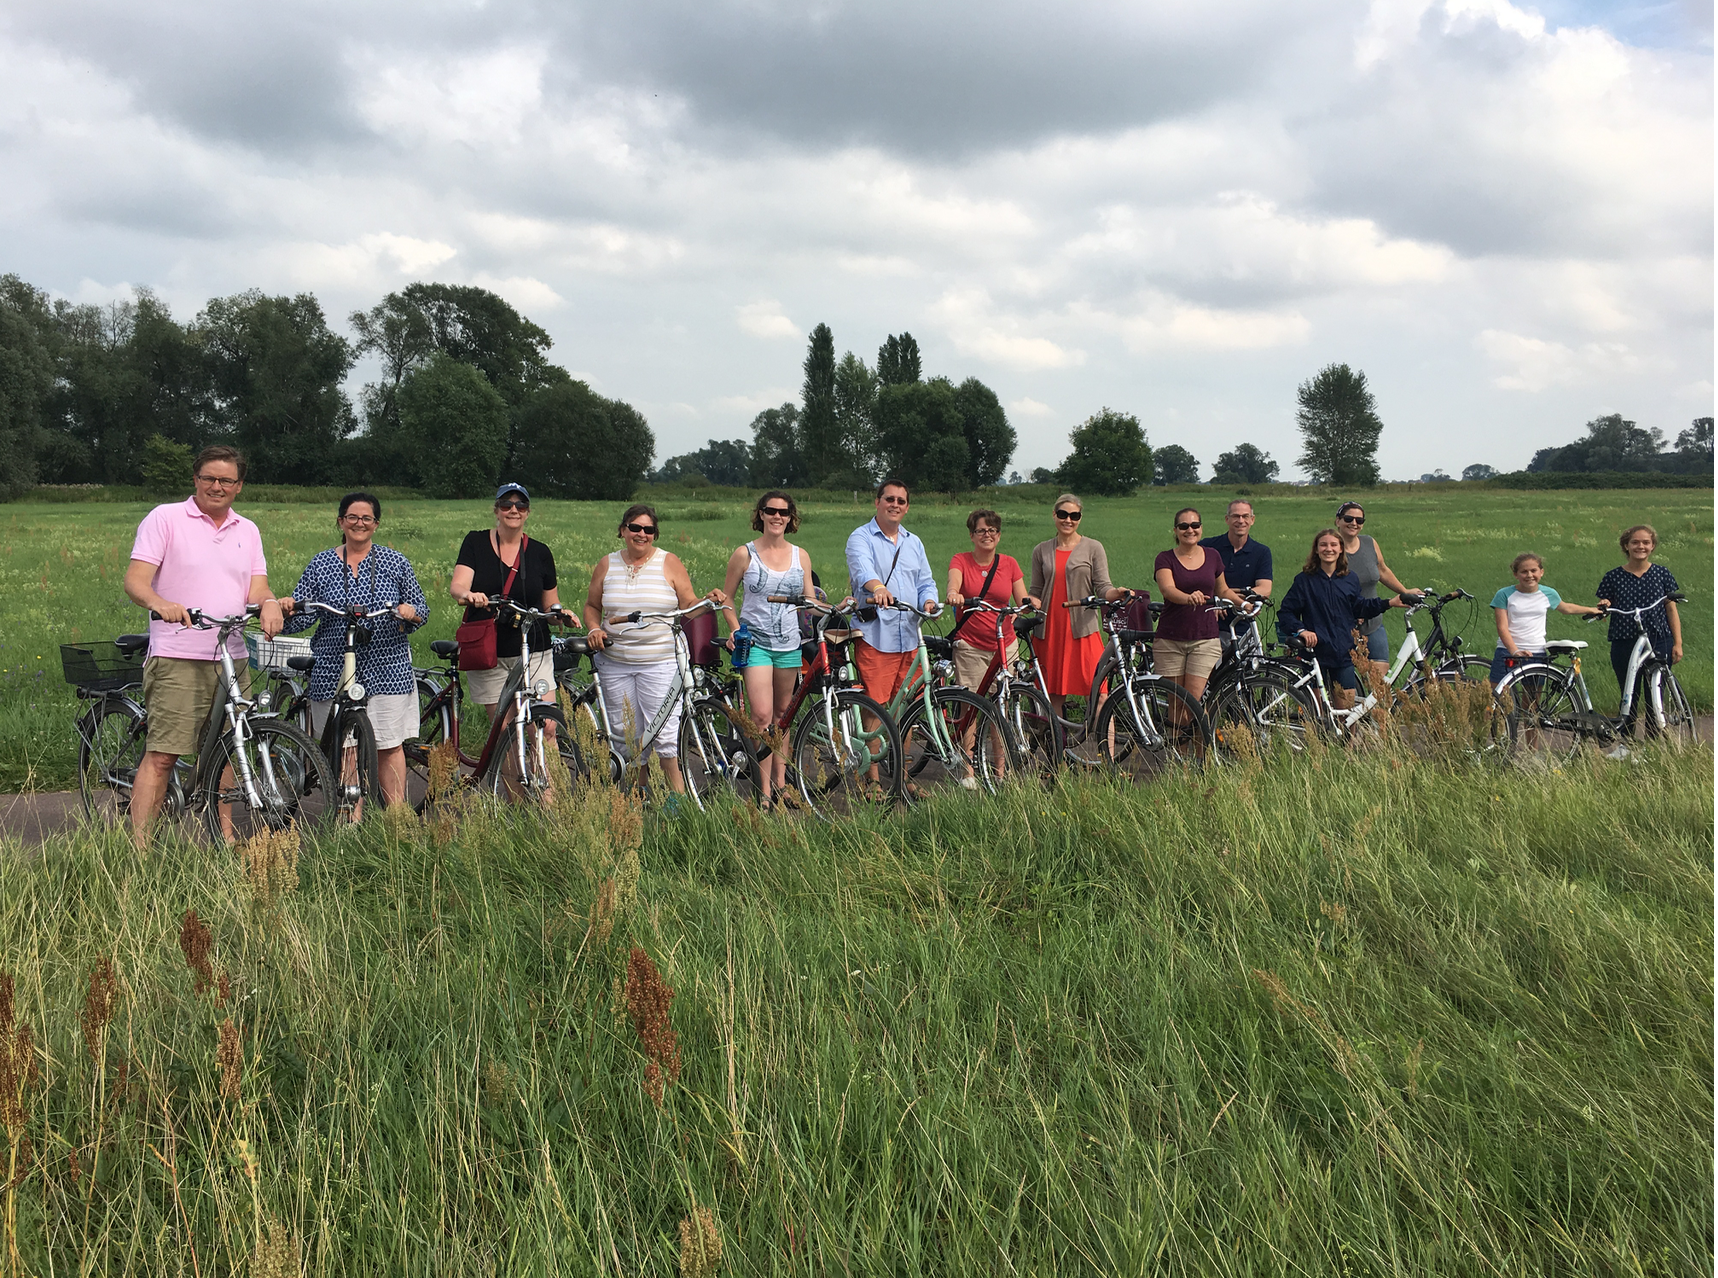 Group on Bikes July 2017.png